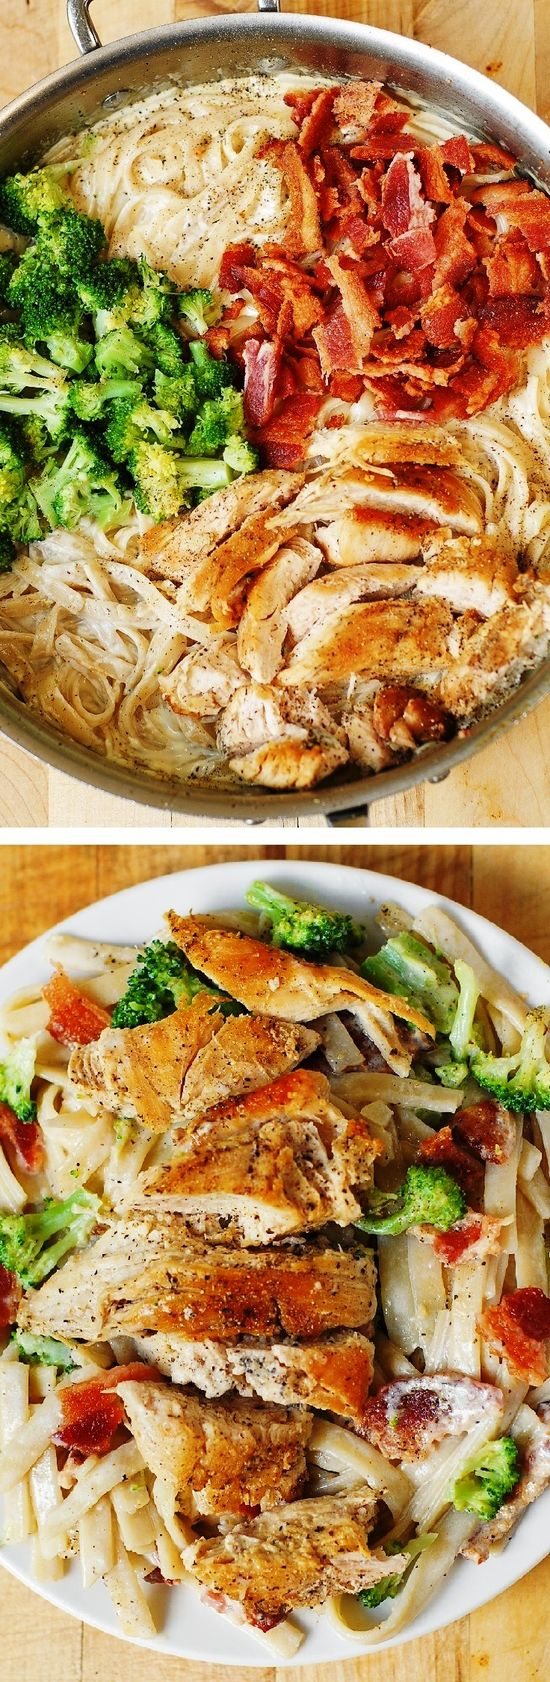 Food Cooking ideas and tips  Board